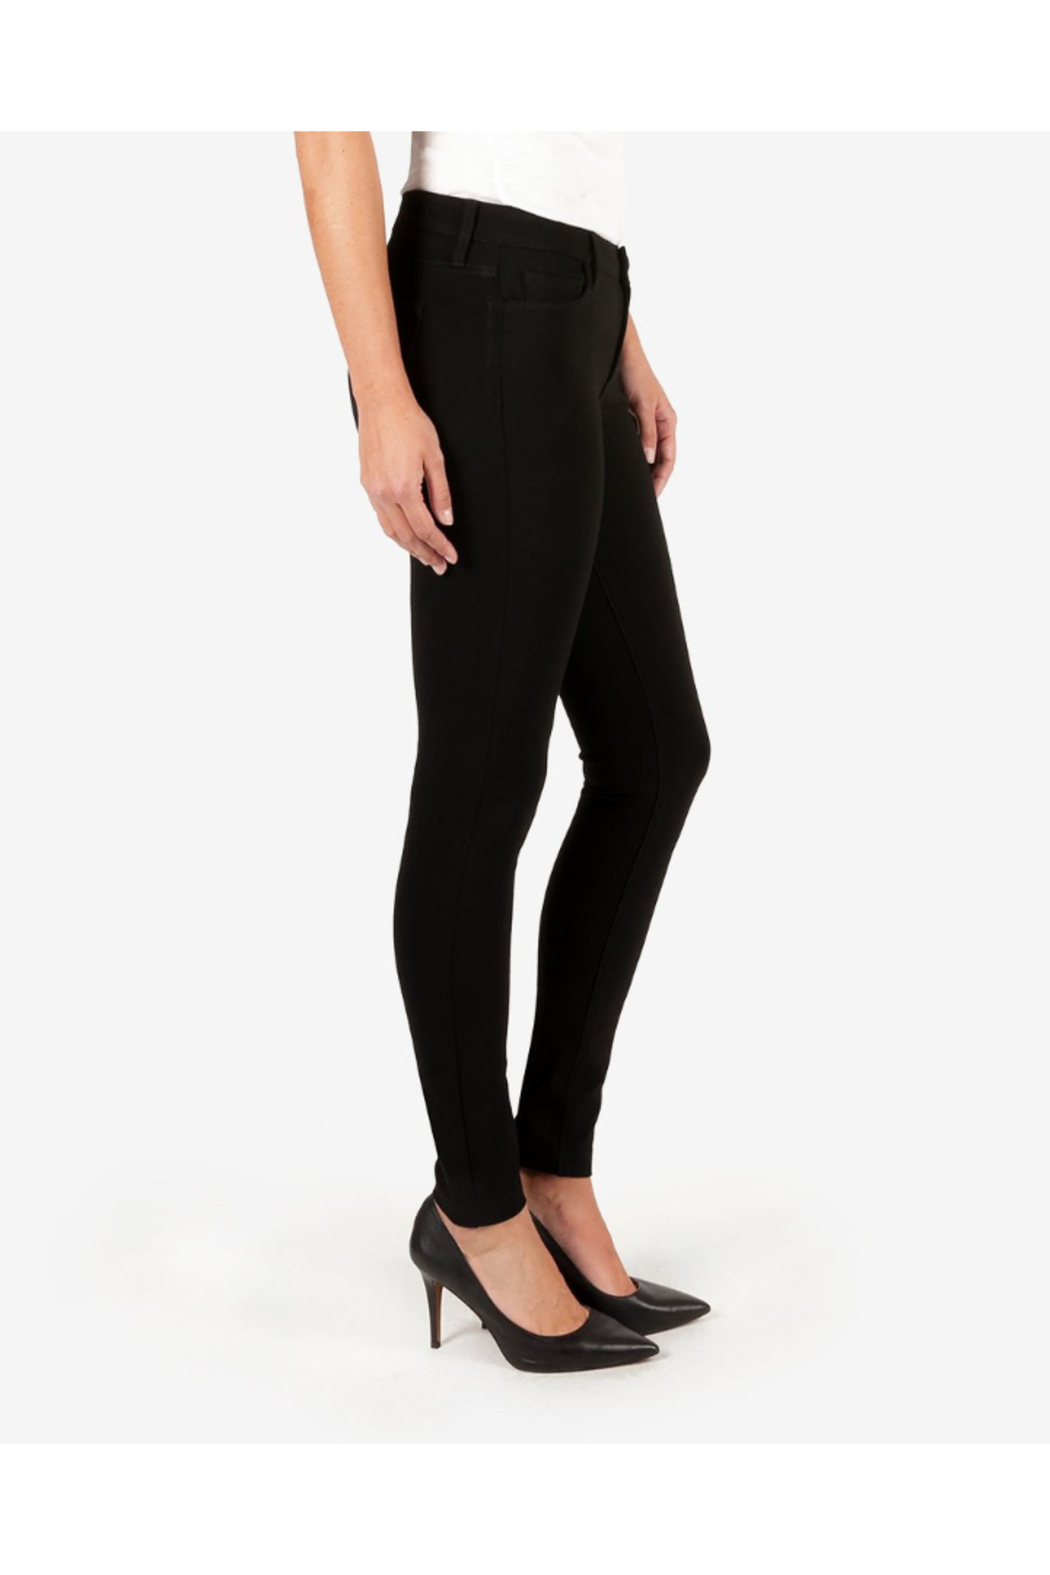 Kut from the Kloth MIA PONTE SLIM FIT SKINNY - Side Cropped Image